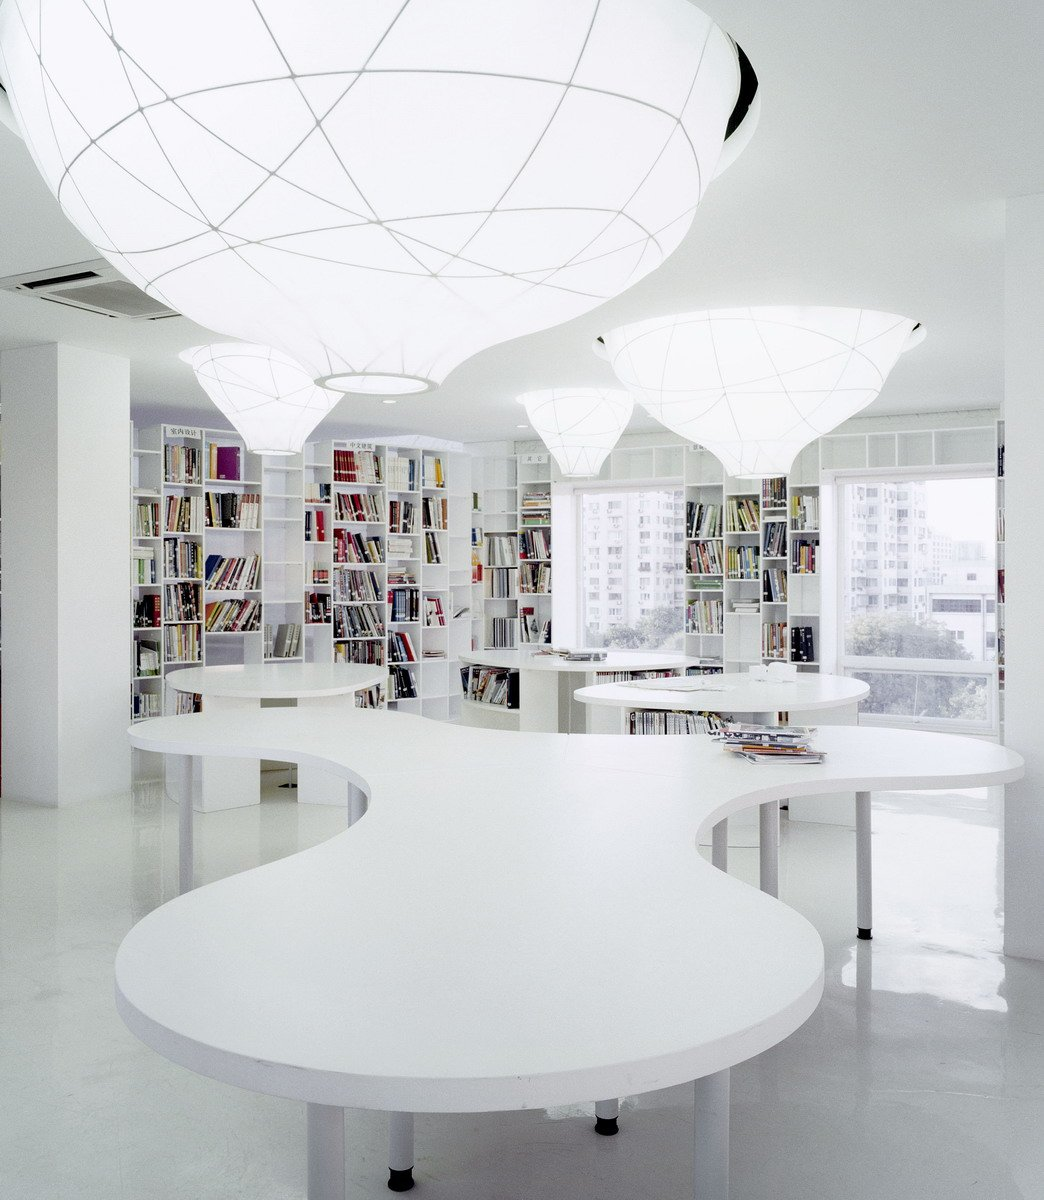 Image of: Cool-Lighting-Ideas-Contemporary Office Interior Called Mochen Office Interior in Beijing, China